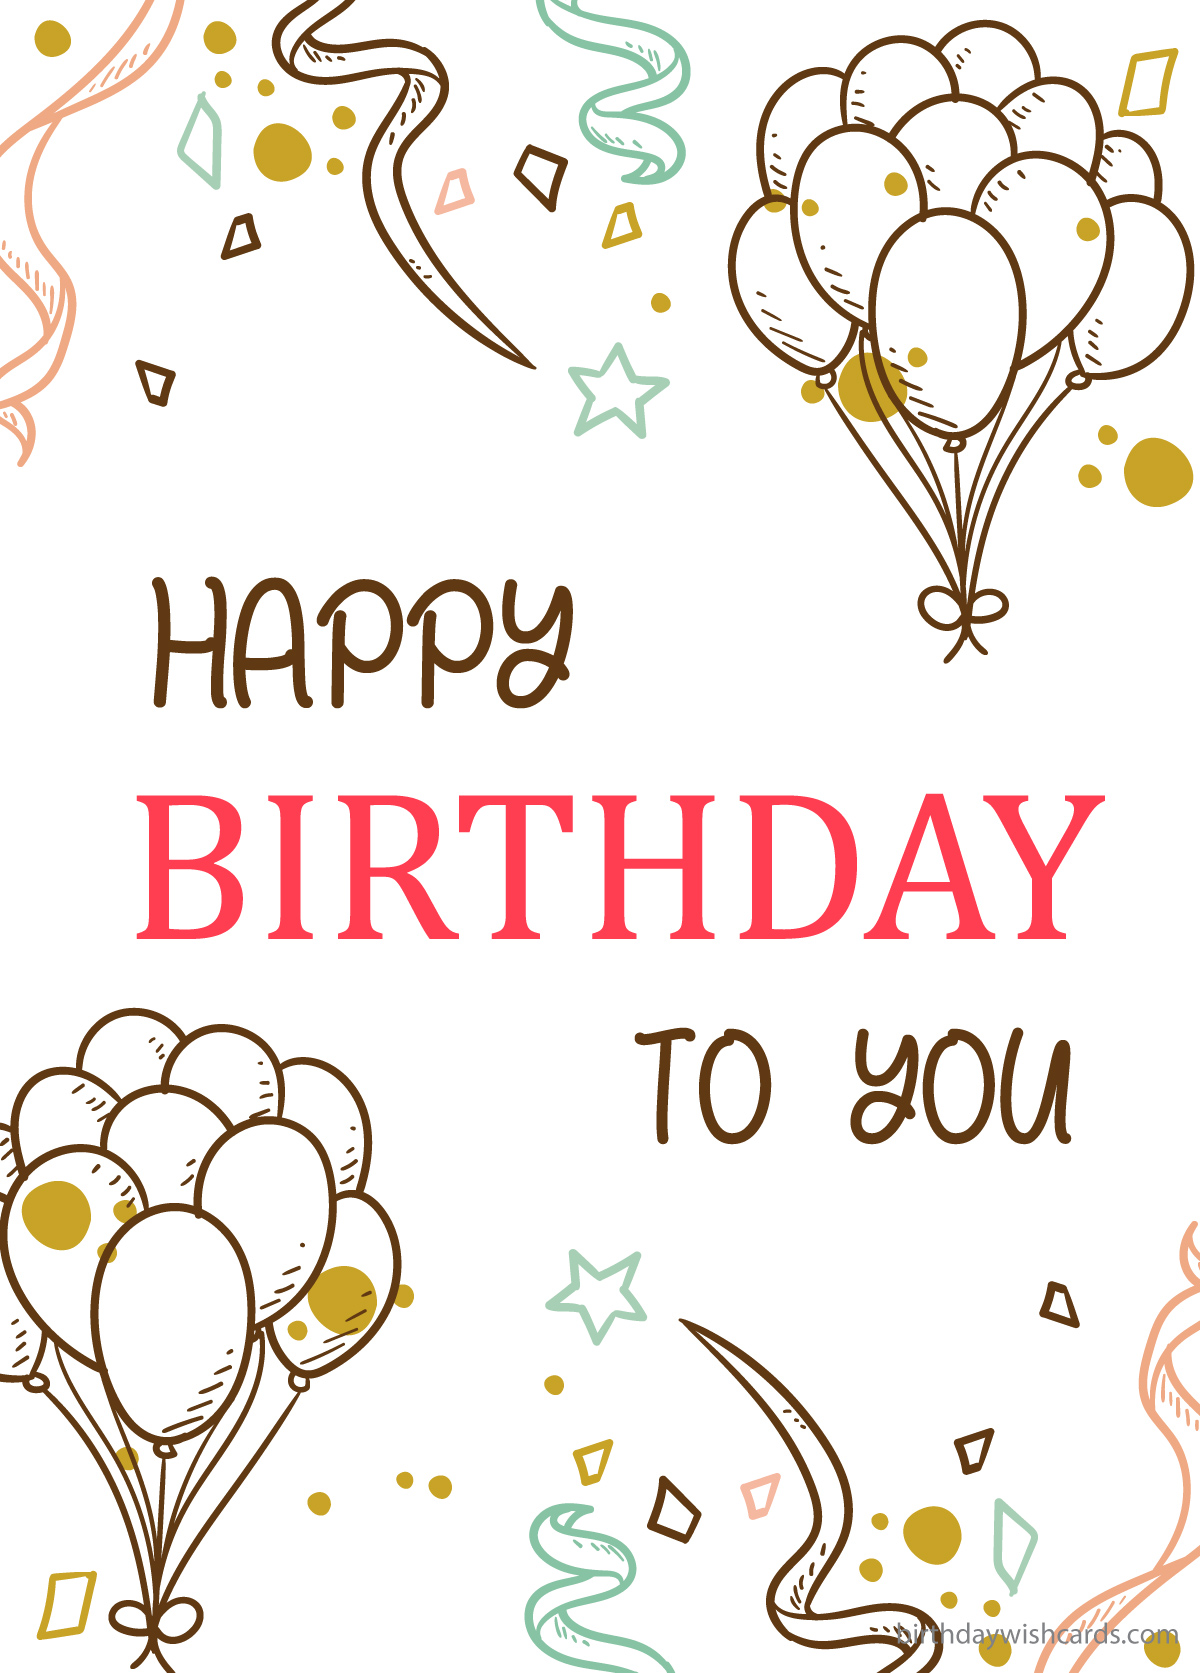 happy birthday to you great images